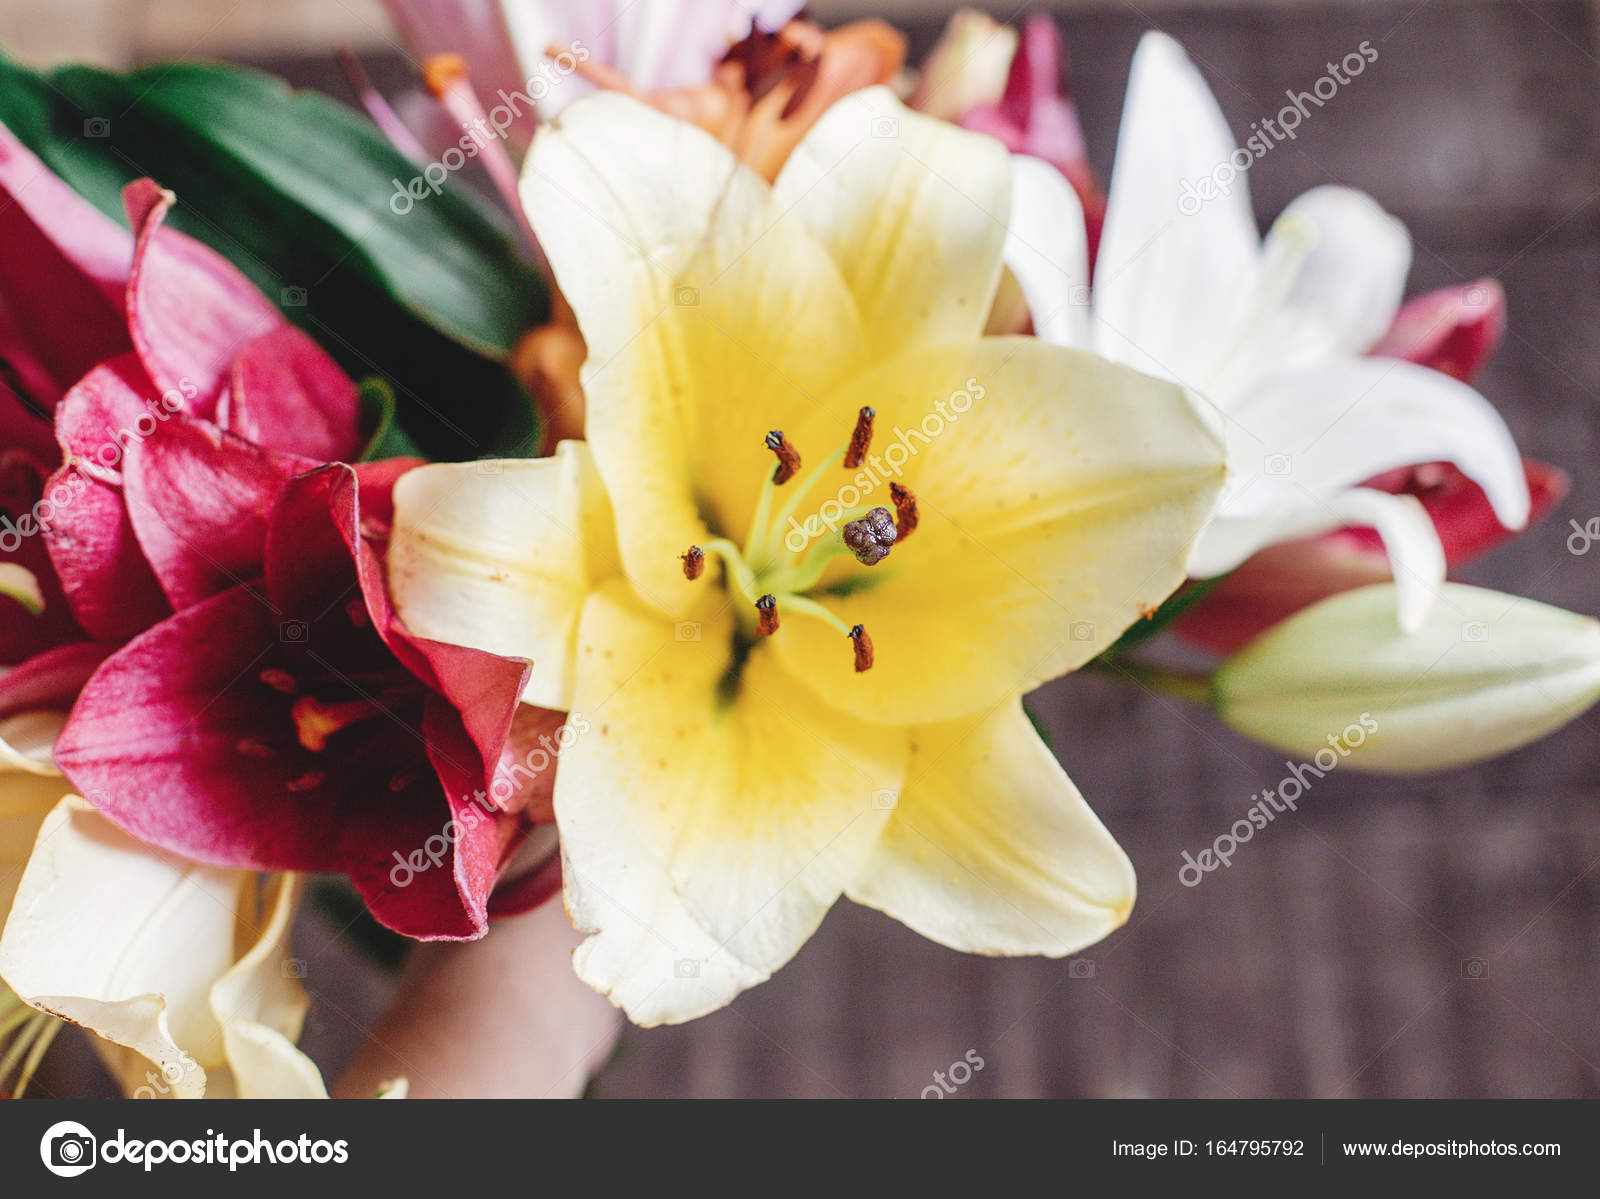 Hand holding lily flowers stock photo sonyachny 164795792 hand holding lily flowers stock photo izmirmasajfo